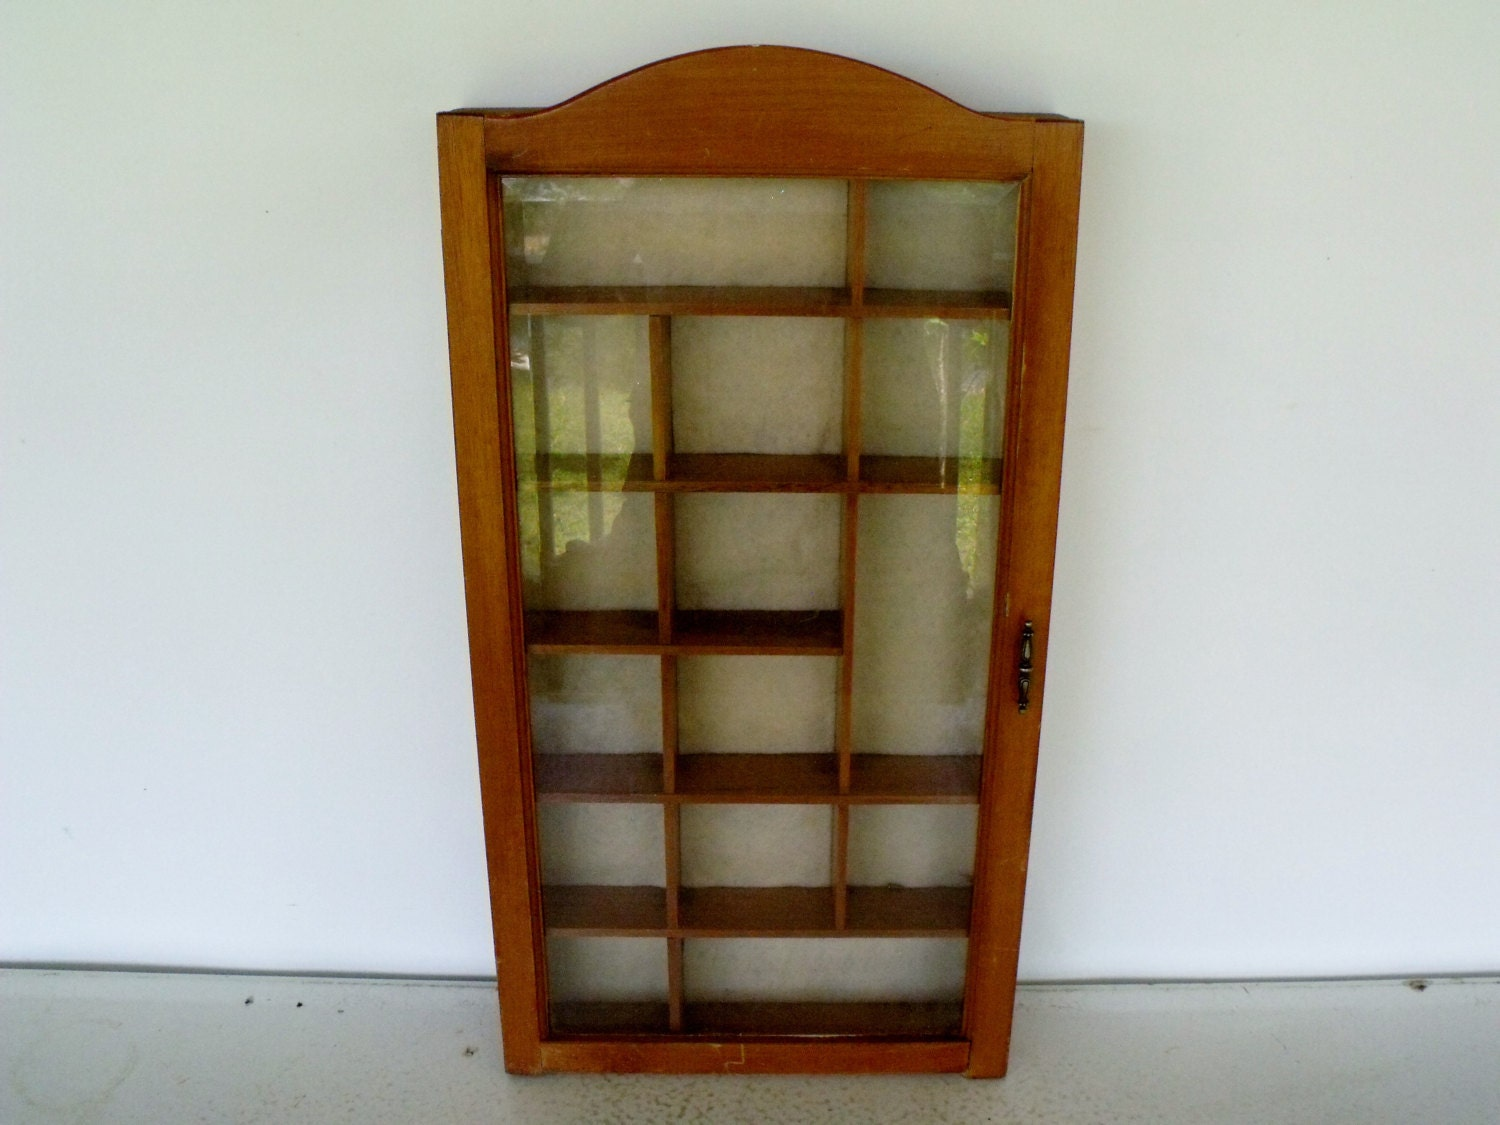 1125 #6C360A Curio Cabinet Wood Display Case Glass Door Felt Lined picture/photo Wood Glass Doors 41591500